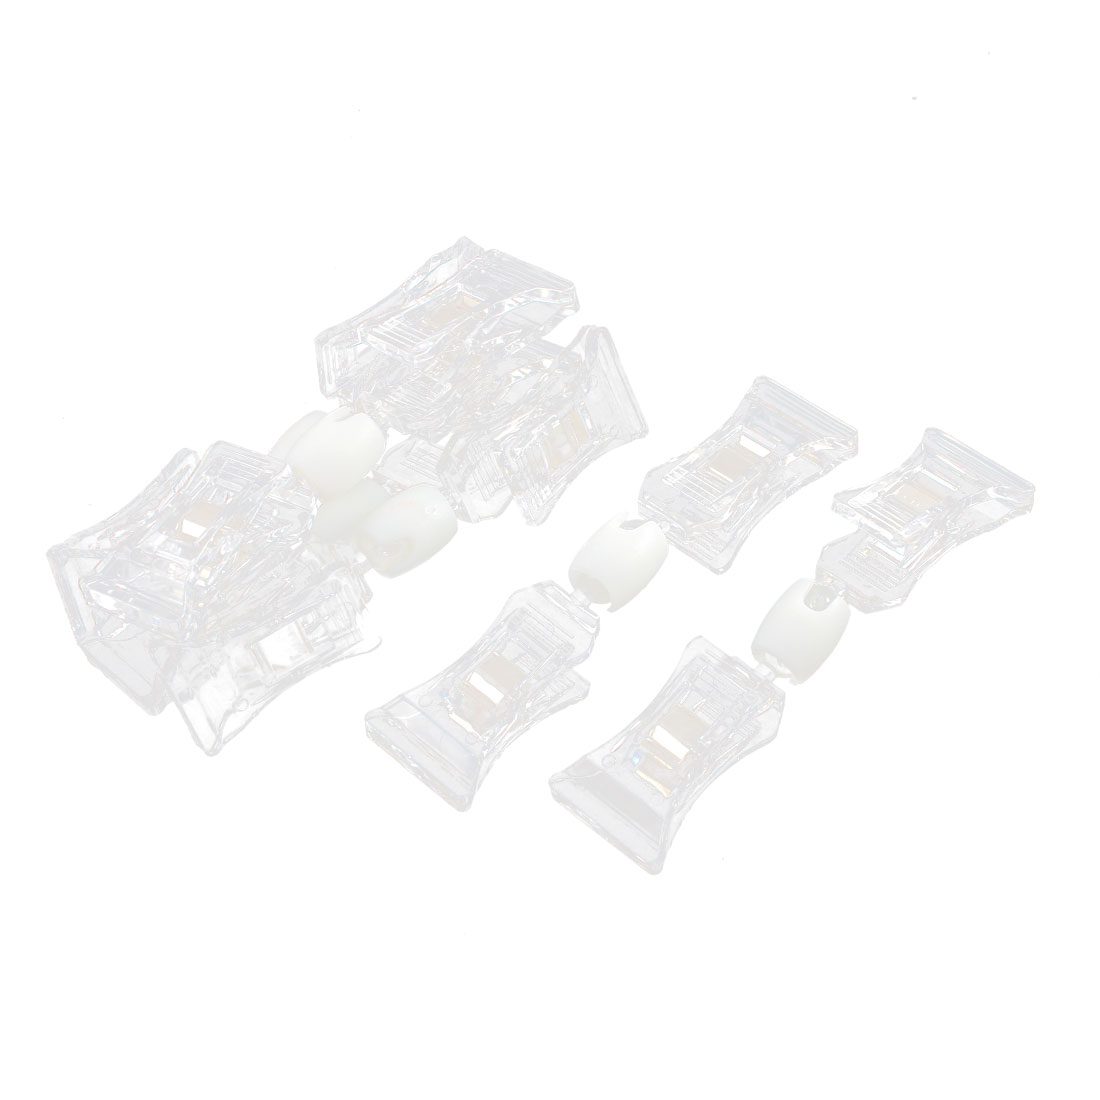 10Pcs Double Plastic Clips Pop Sign Card Display Holder Racks